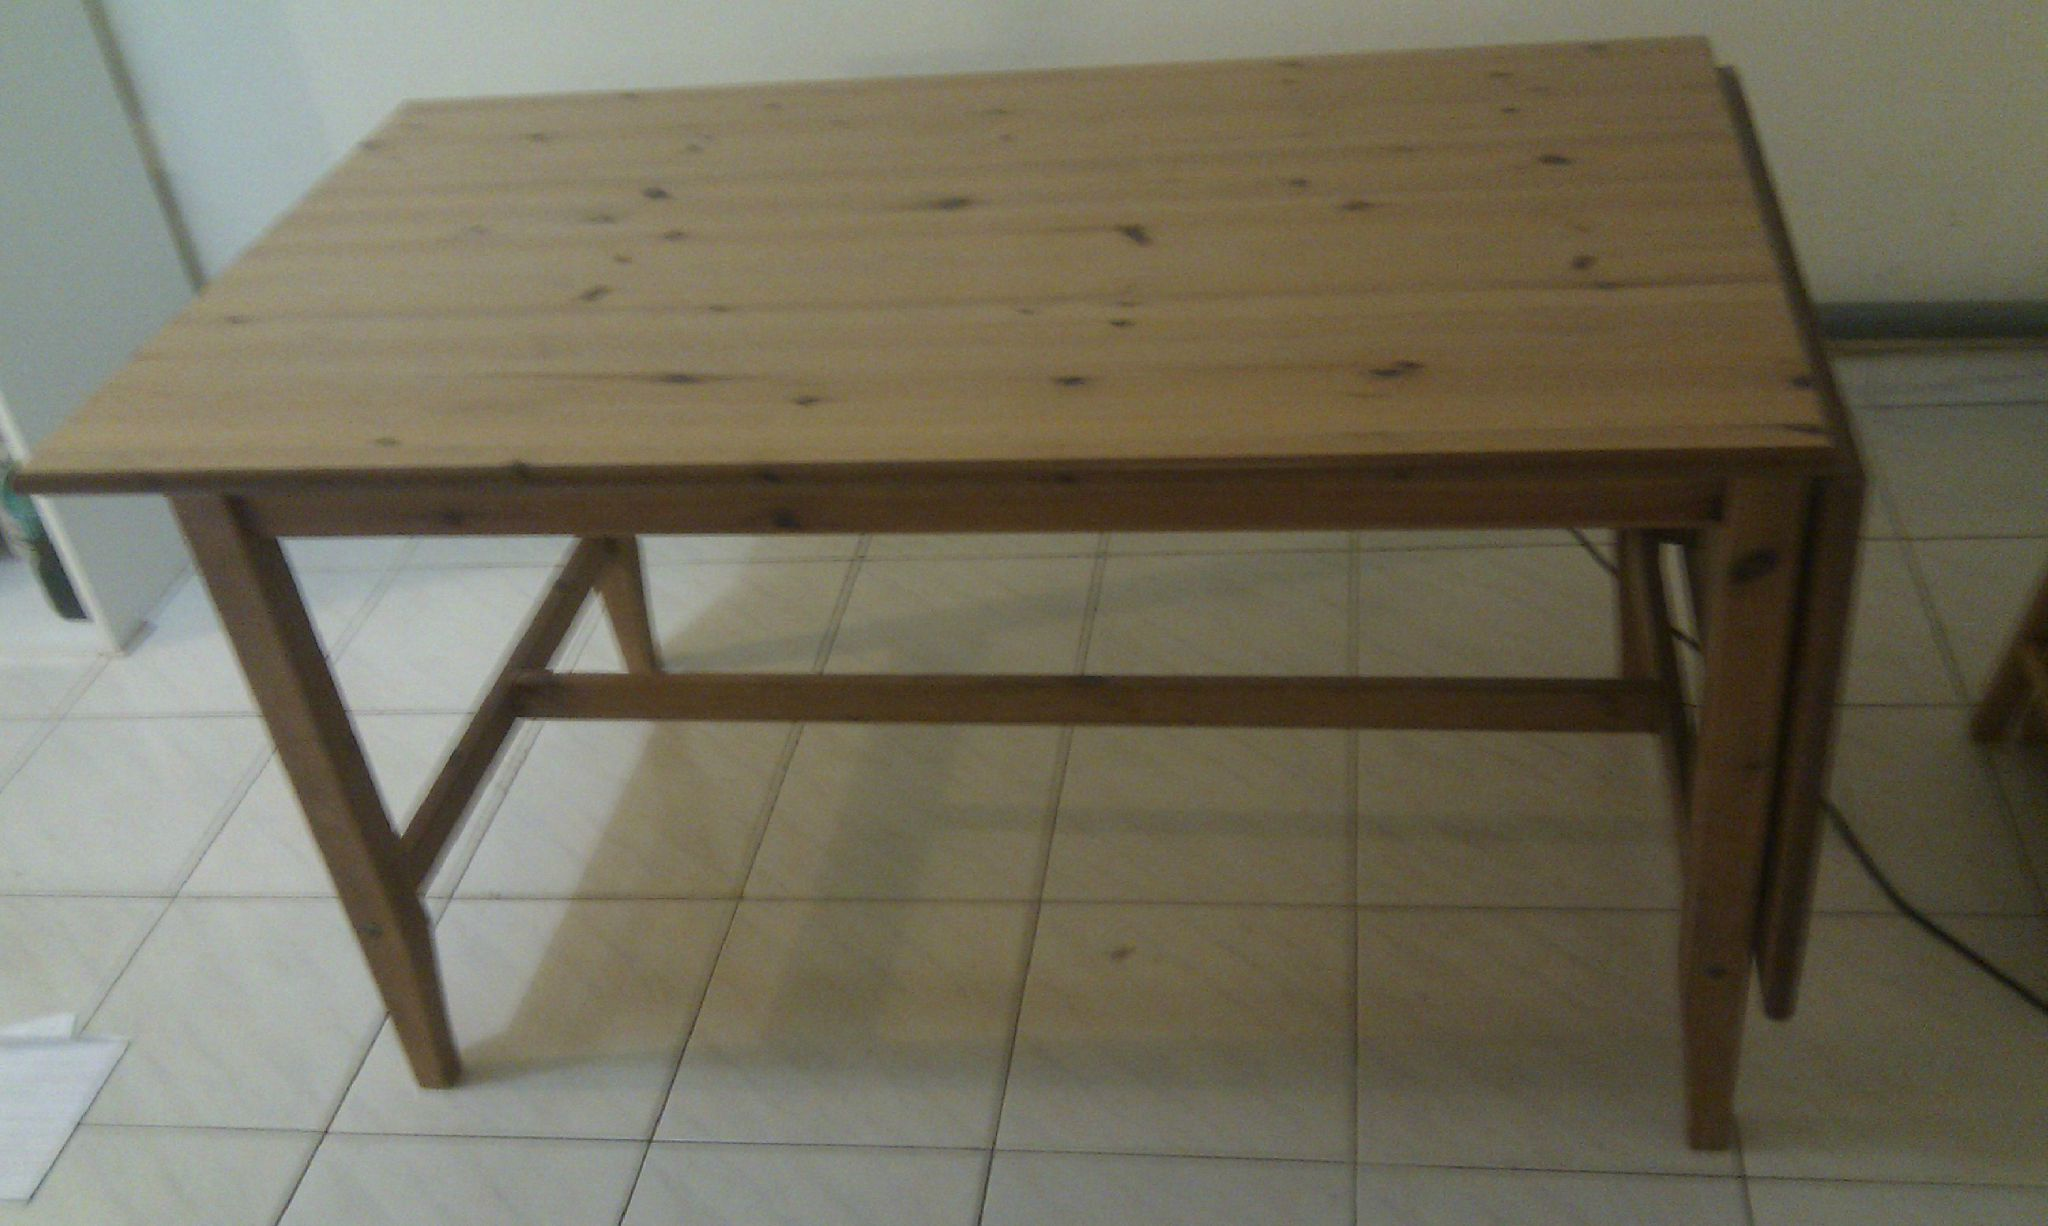 Table bois ikea rallonge table de lit a roulettes for Ikea table bois